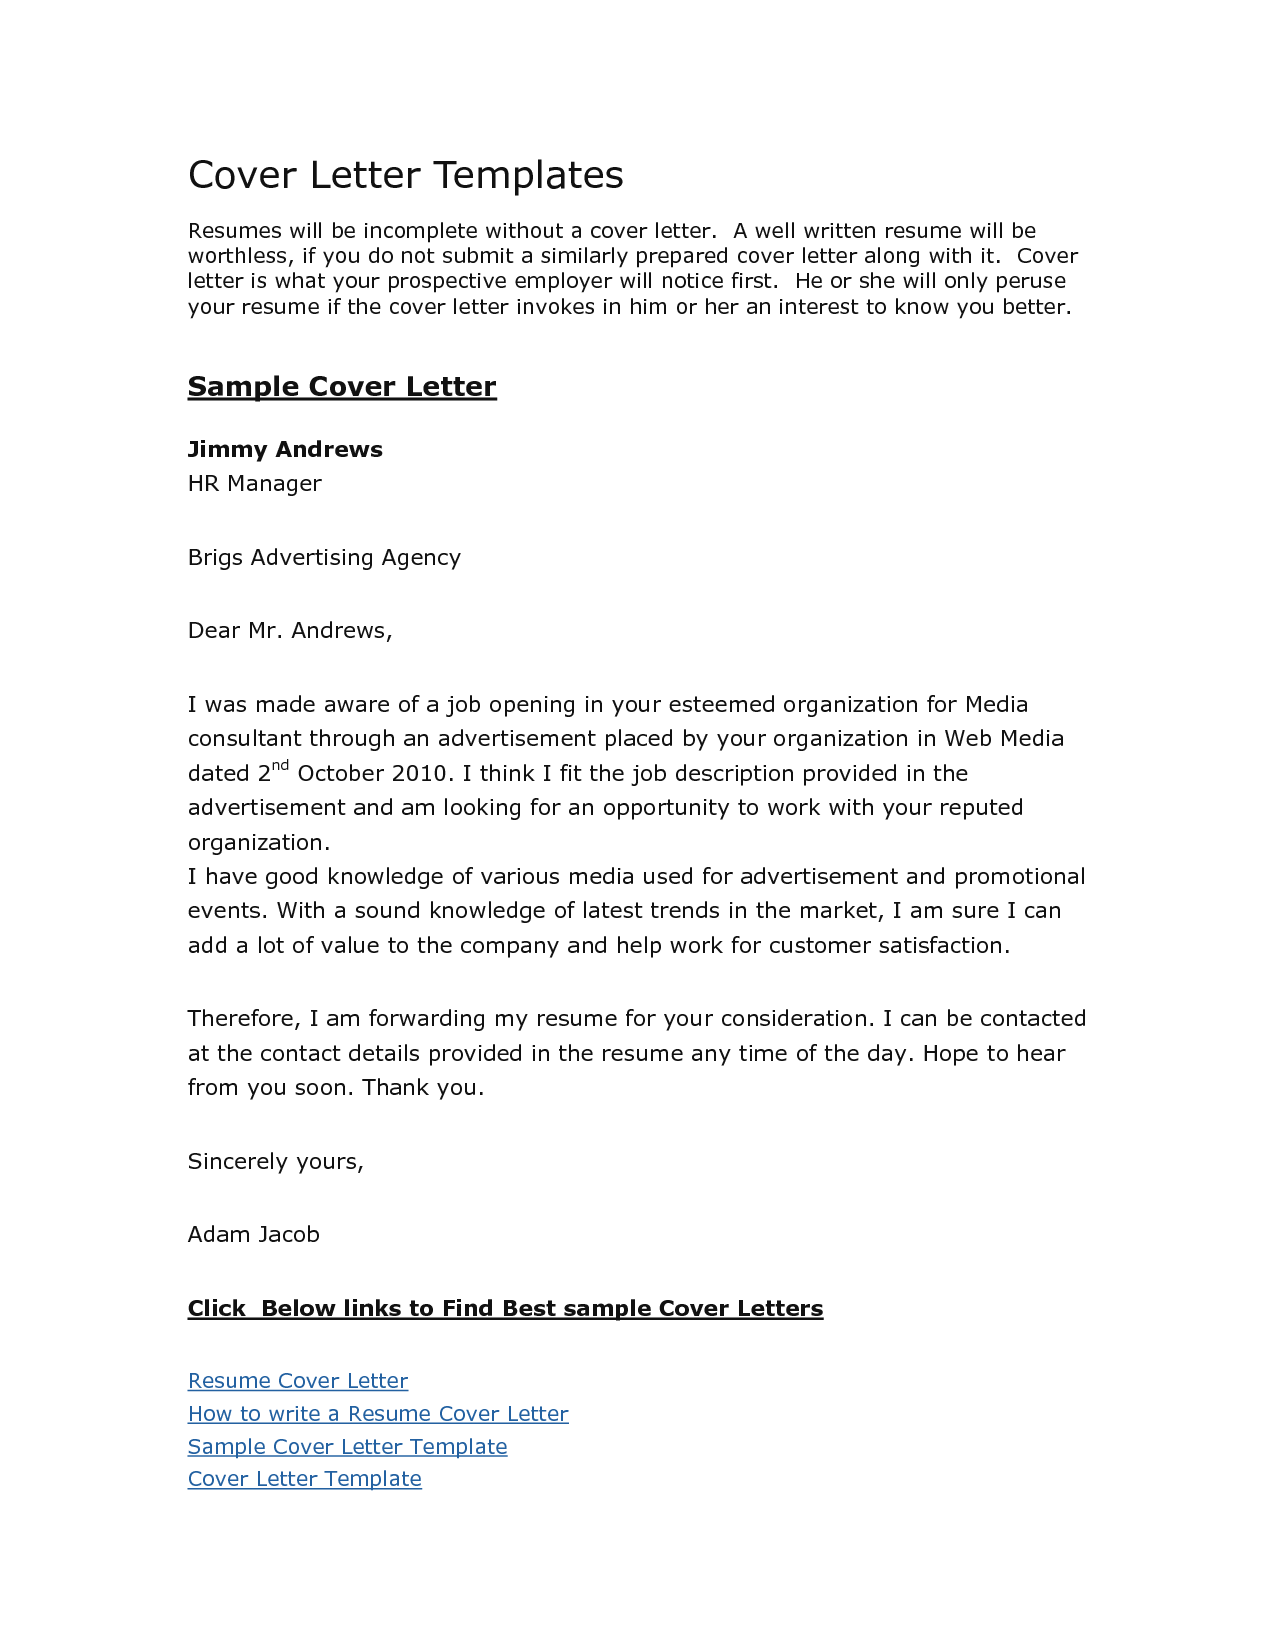 sample cover letter library job resume builder sample cover letter library job cover letters 1001 cover letters for cover letter basic cover